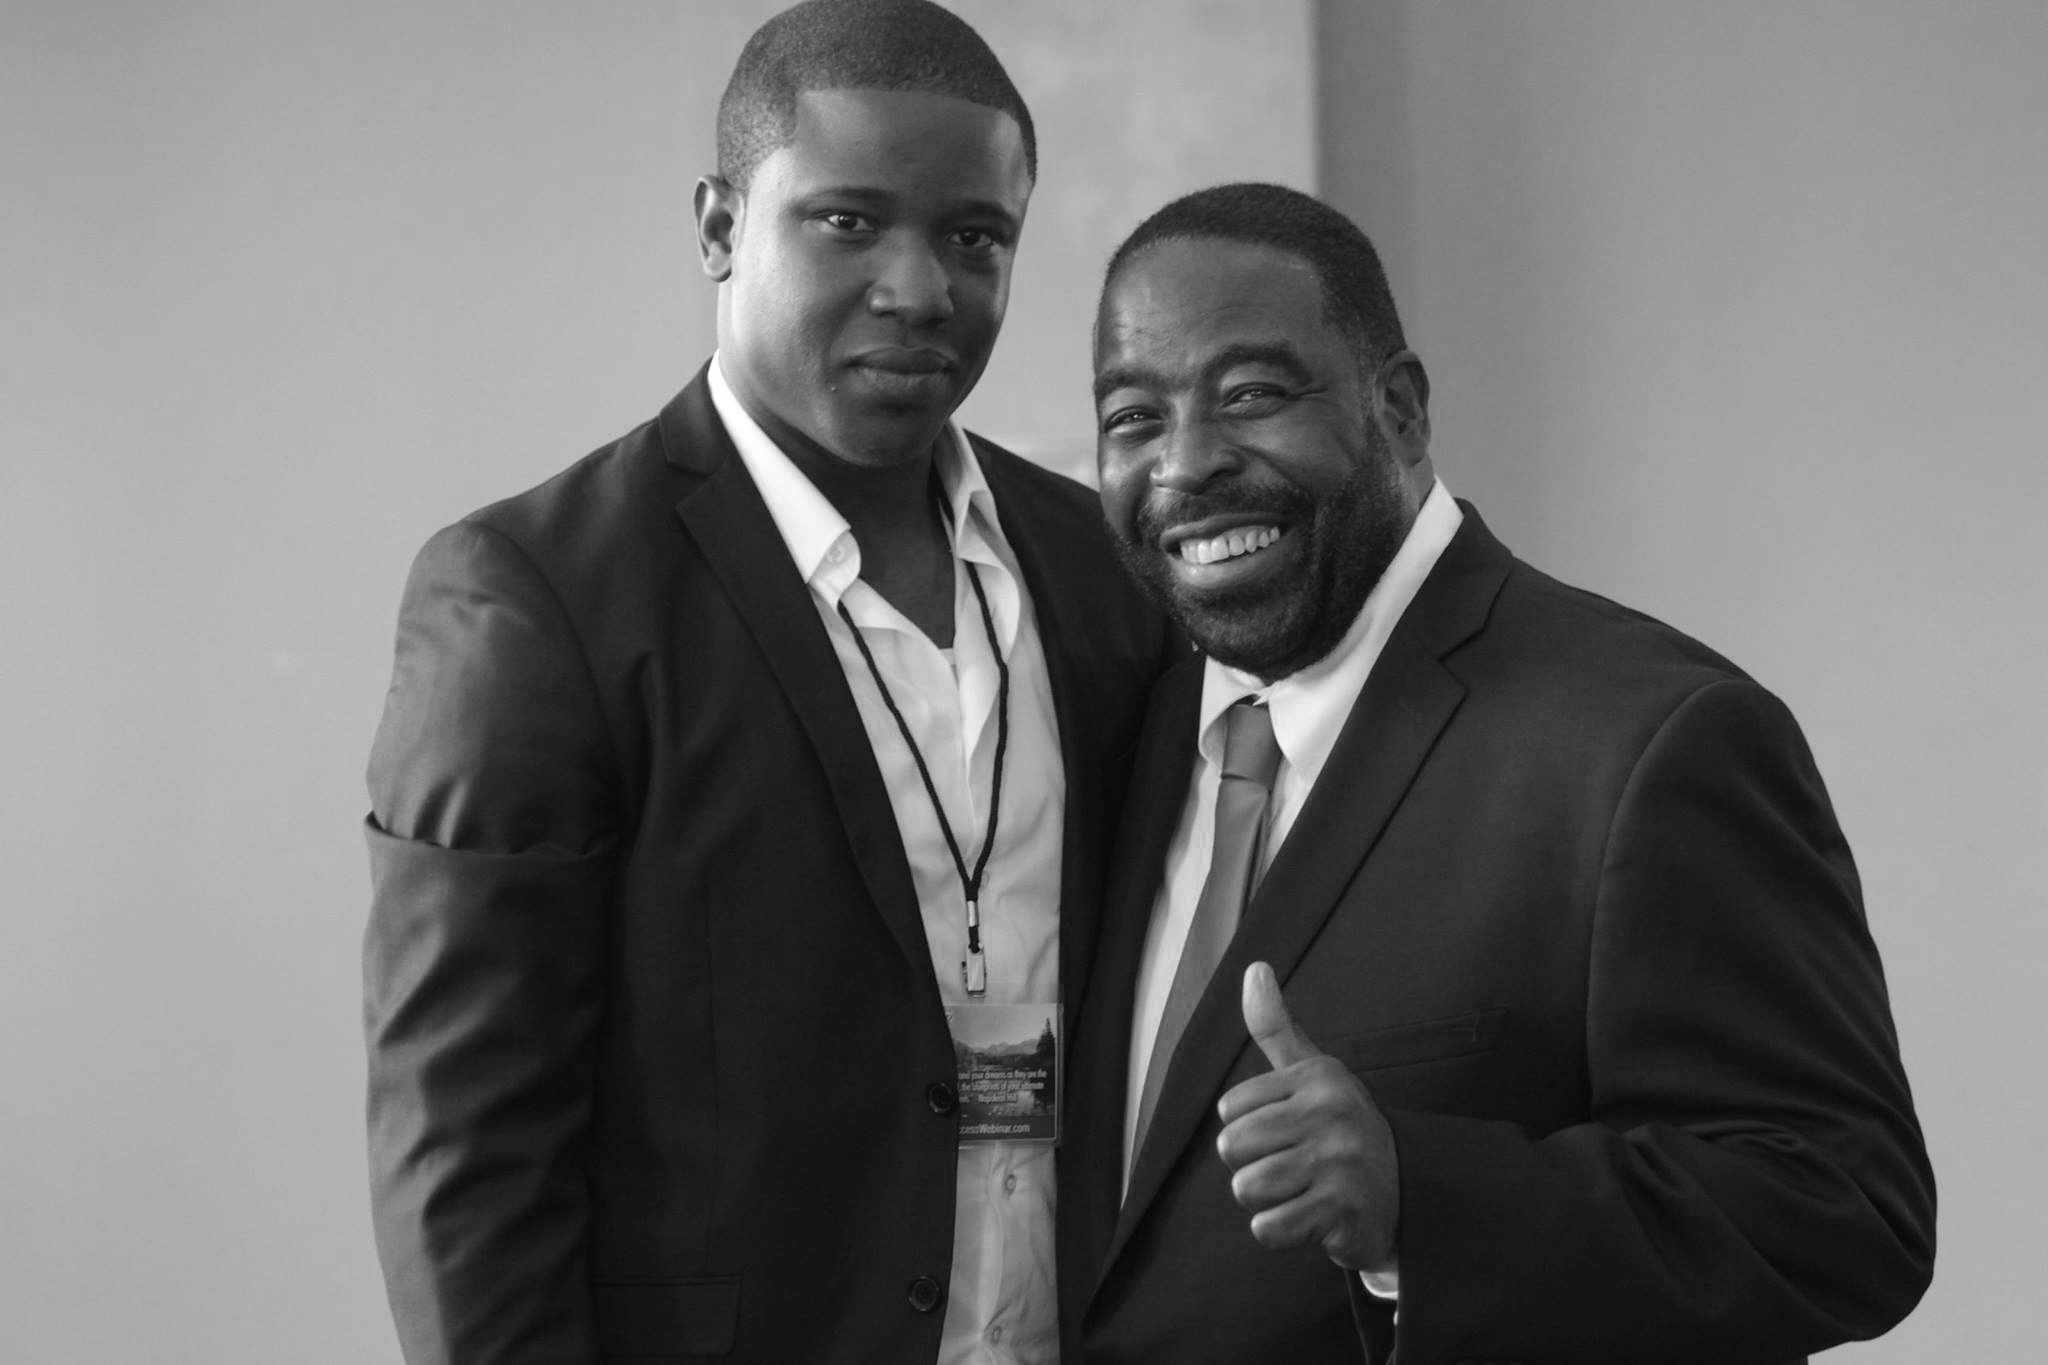 Victor O'frank and les brown